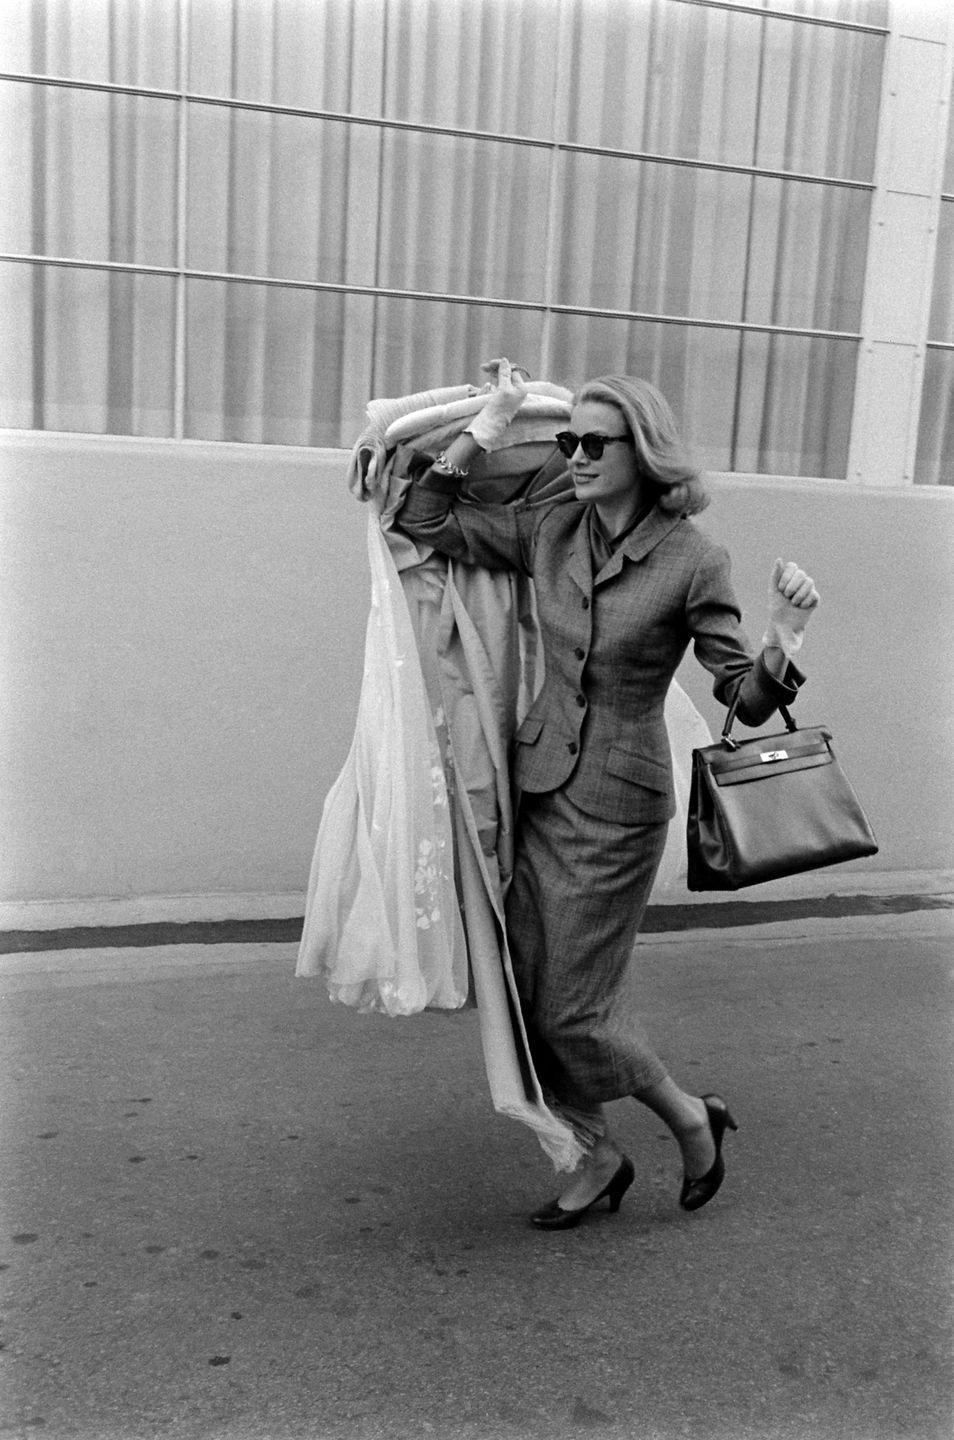 <p>At the height of her career, Kelly retired from Hollywood to take on a new role as Princess of Monaco. Here, she clears out her closet from the studio lot, ahead of her upcoming nuptials in 1956. </p>